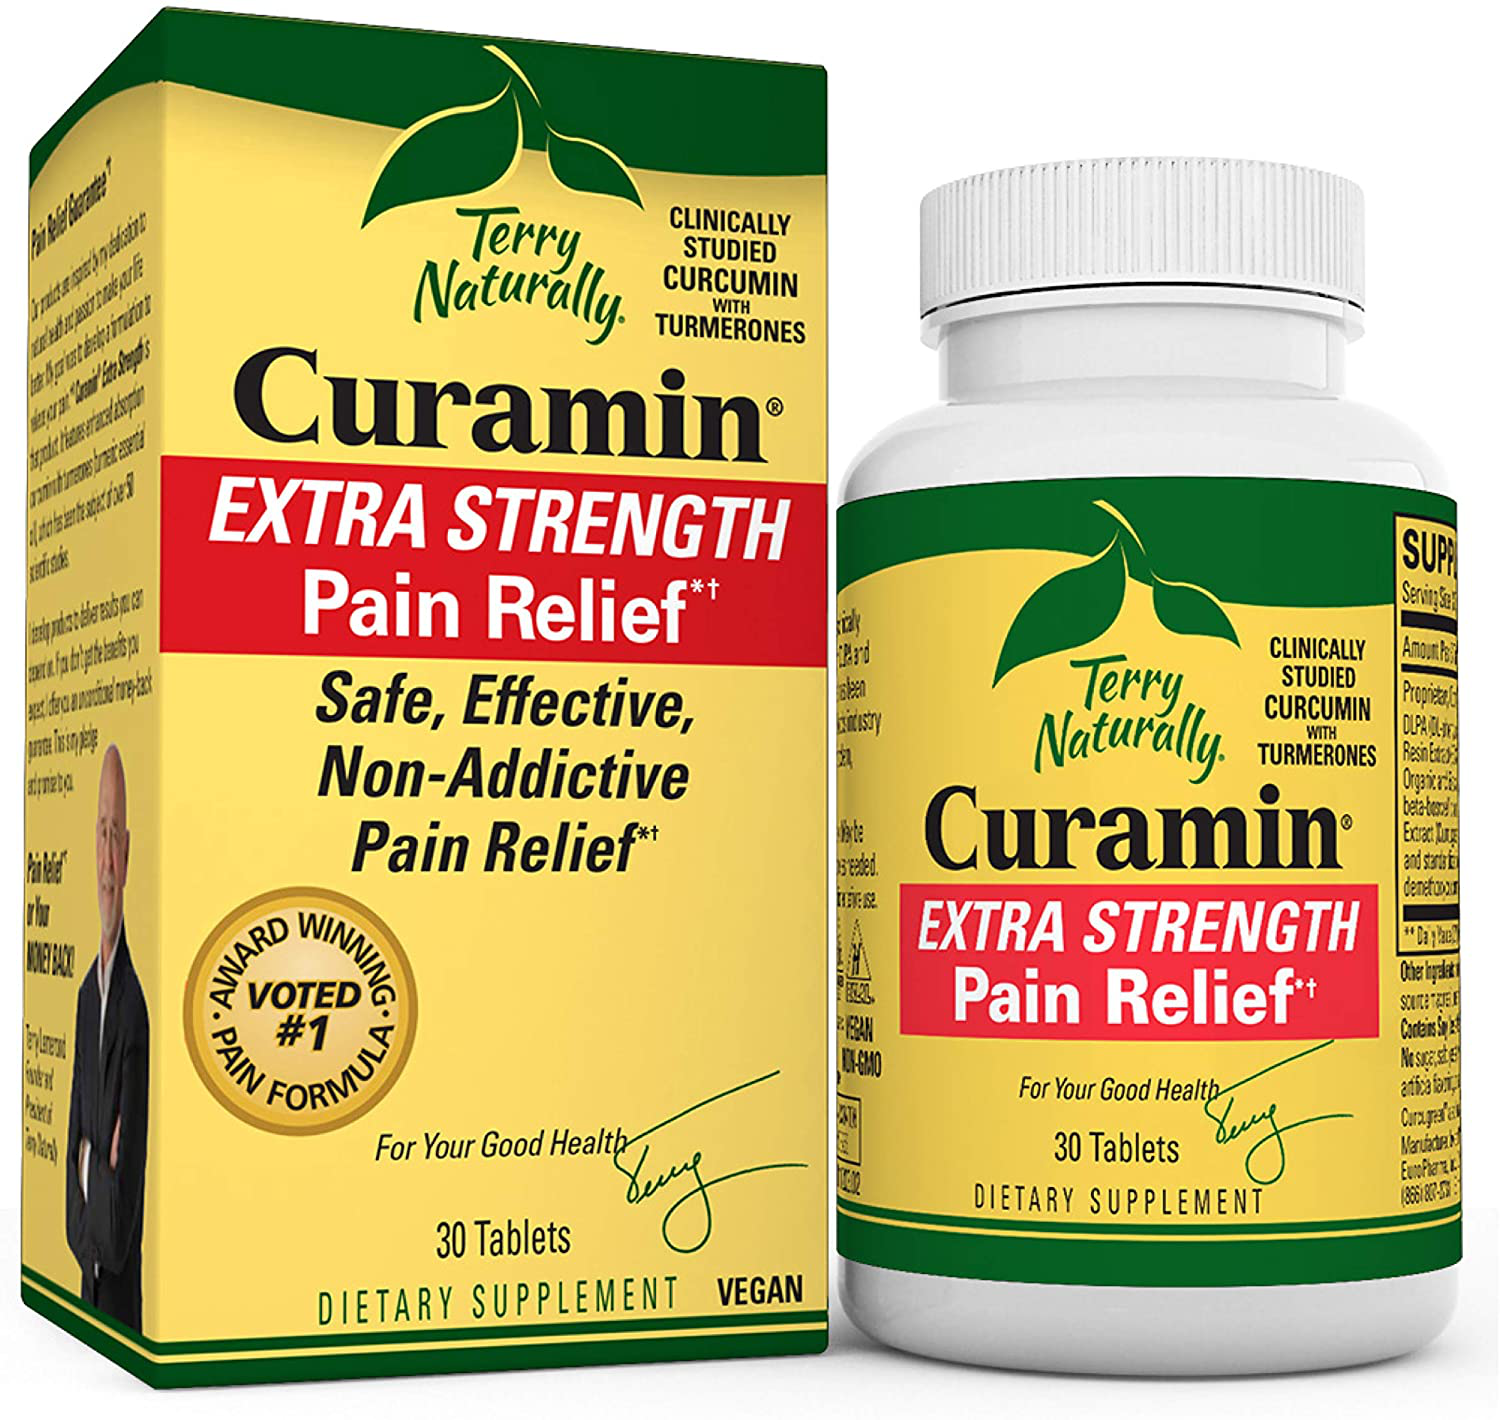 Terry Naturally Curamin Extra Strength 30 Vegan Tablets NonAddictive Pain Relief - $25.88